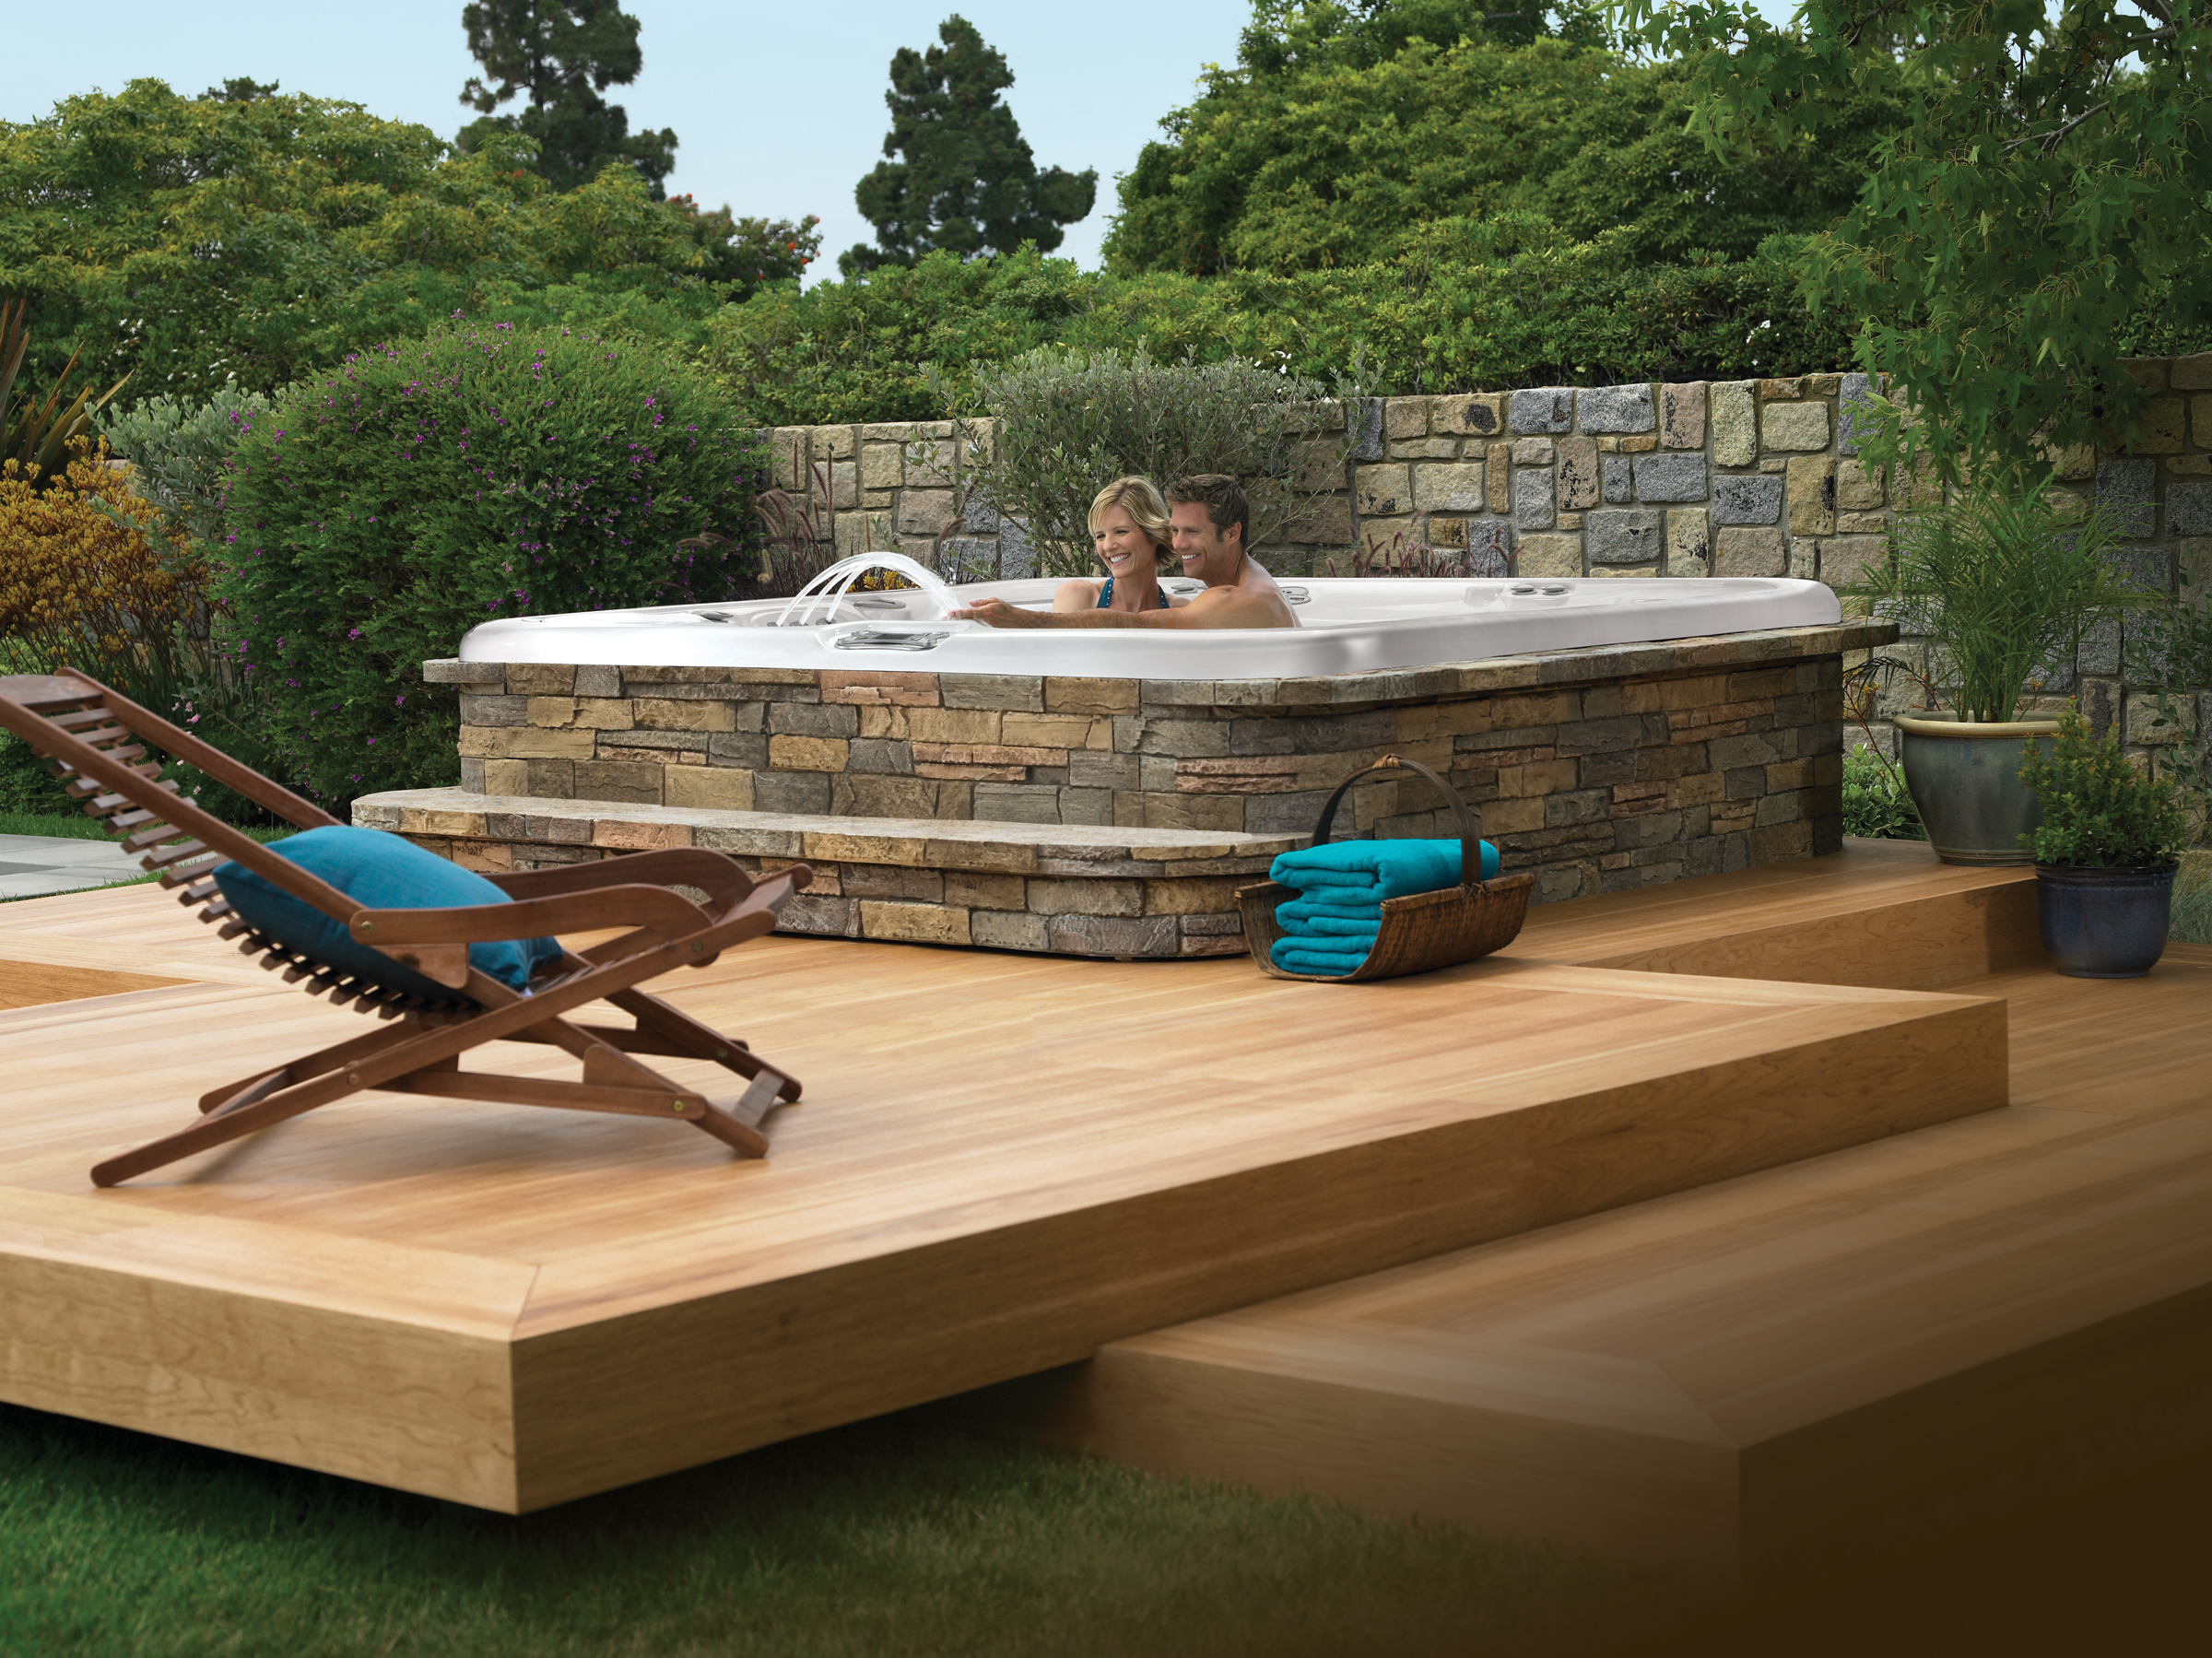 Building the perfect deck for your Hot Springs Spa